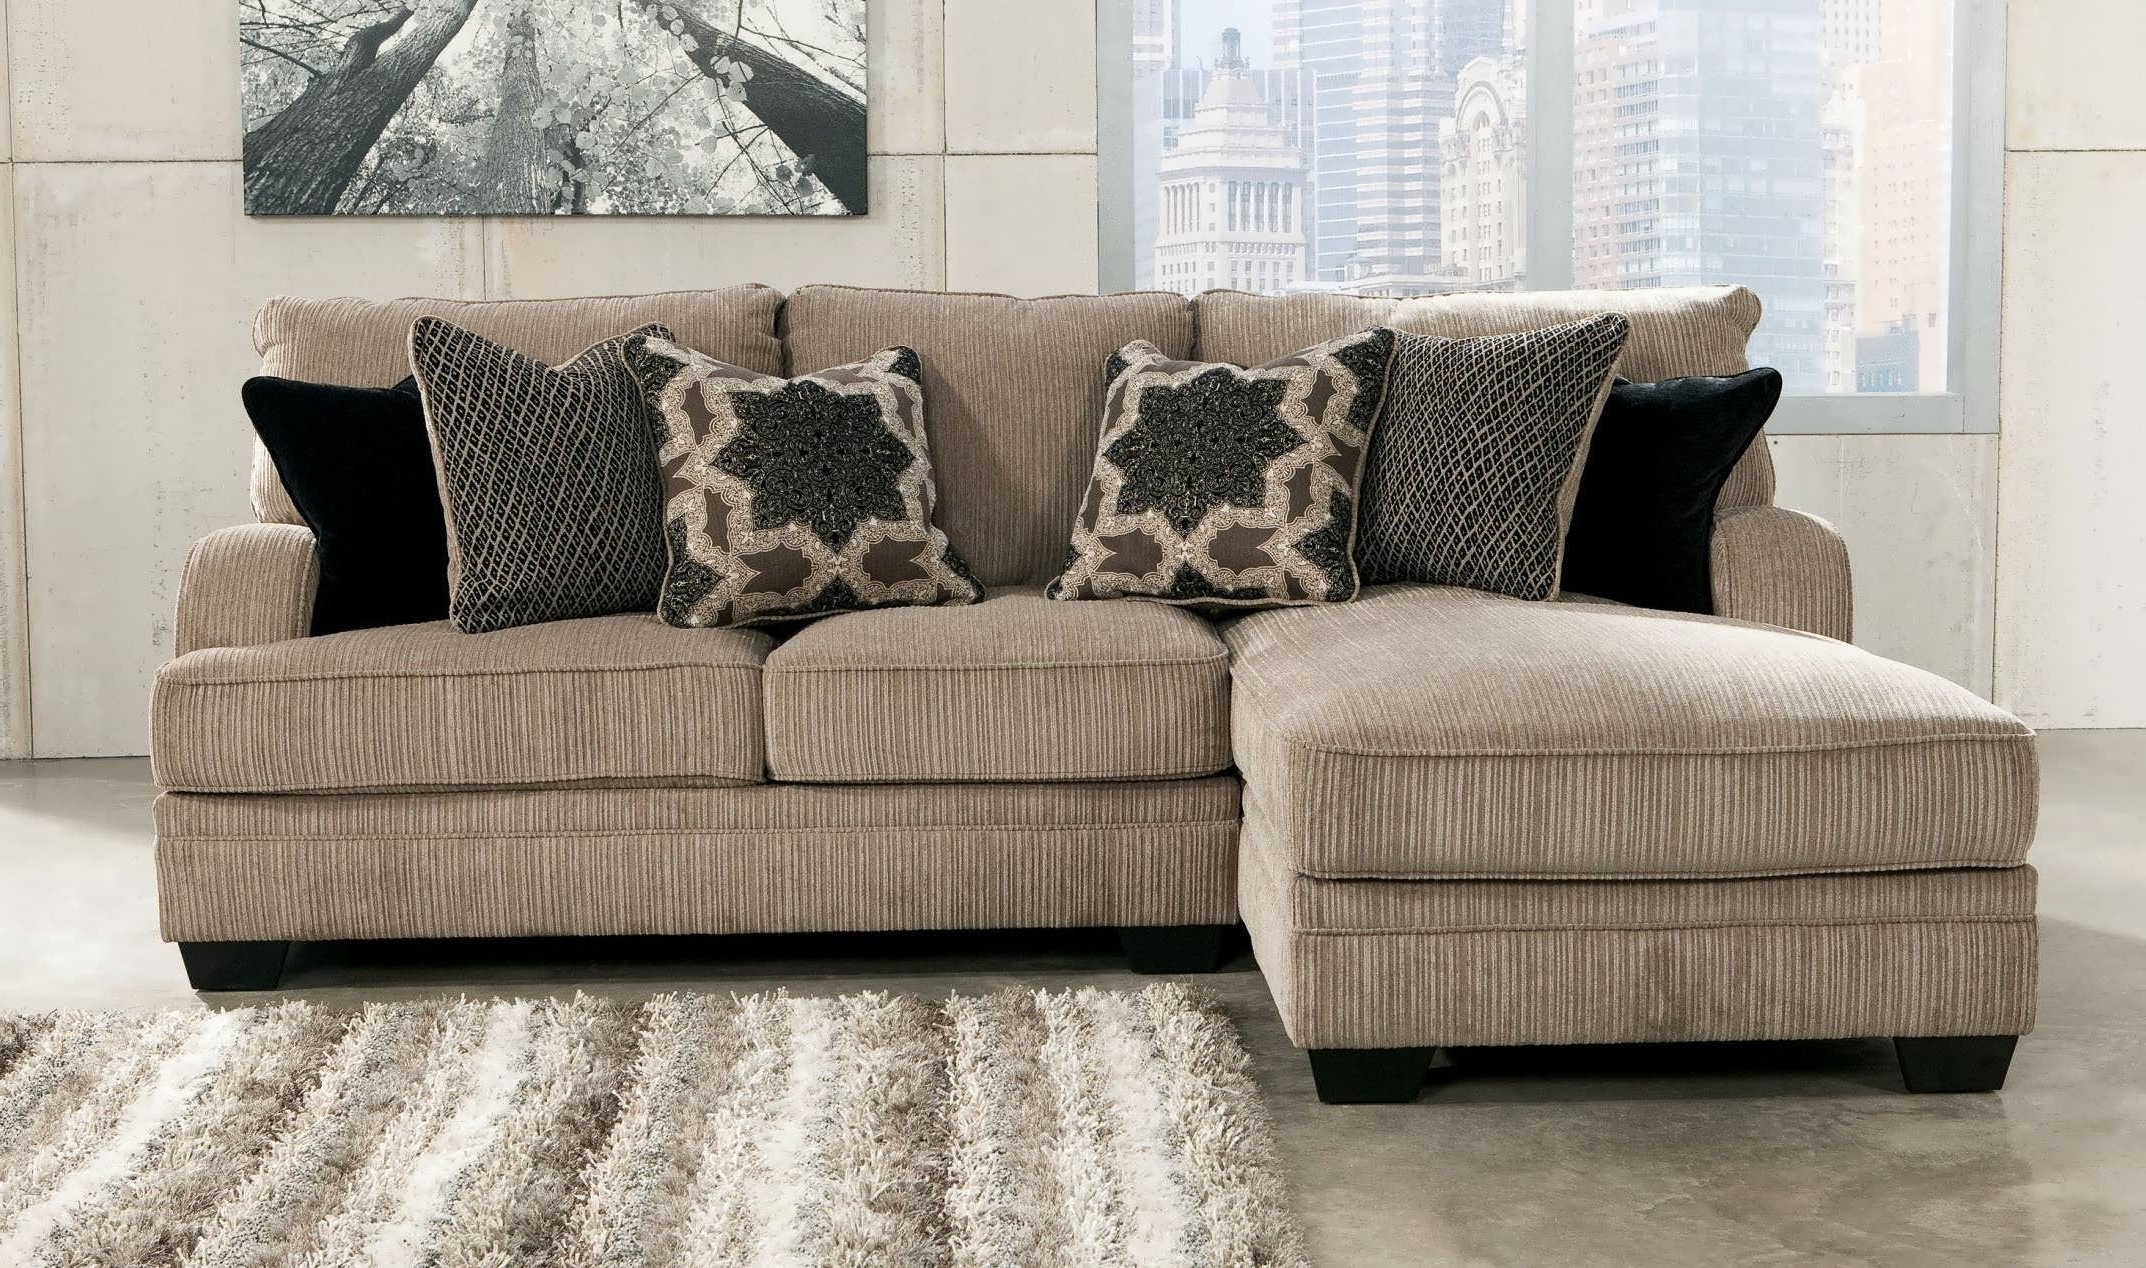 Sofa : Sleeper Sectional Sofa For Small Spaces 2 Piece Sectional Inside Most Recently Released Sectional Sofas For Small Rooms (View 18 of 20)